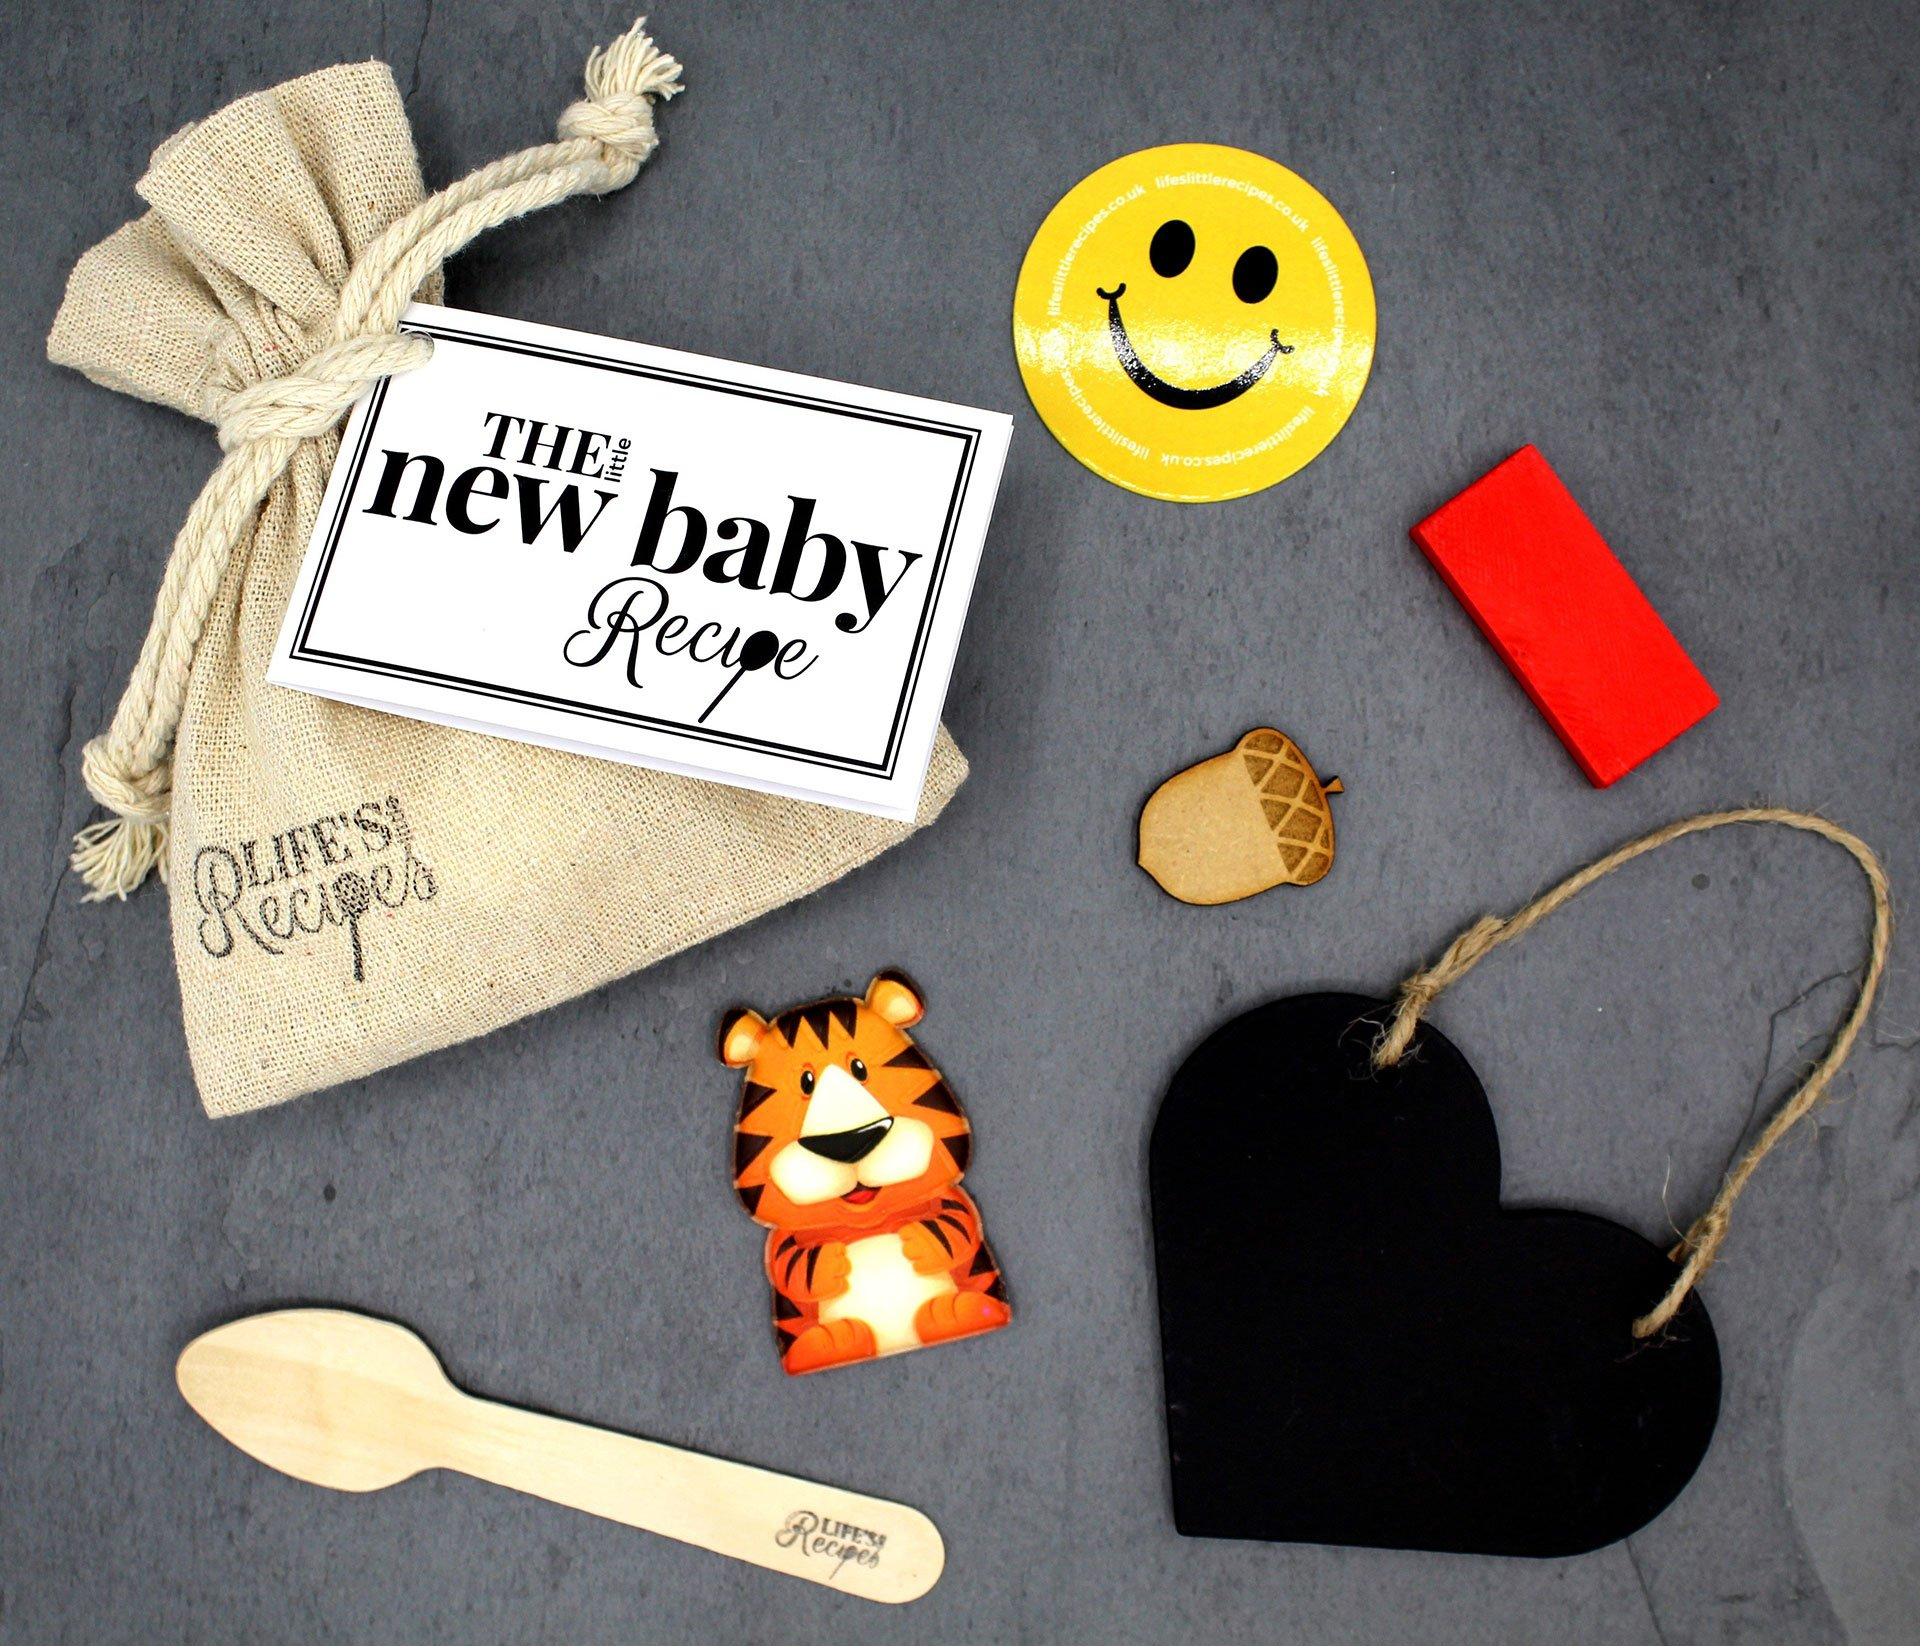 Our idea for thoughtful Gifts and sentimental gifts, the new baby recipe gift bag